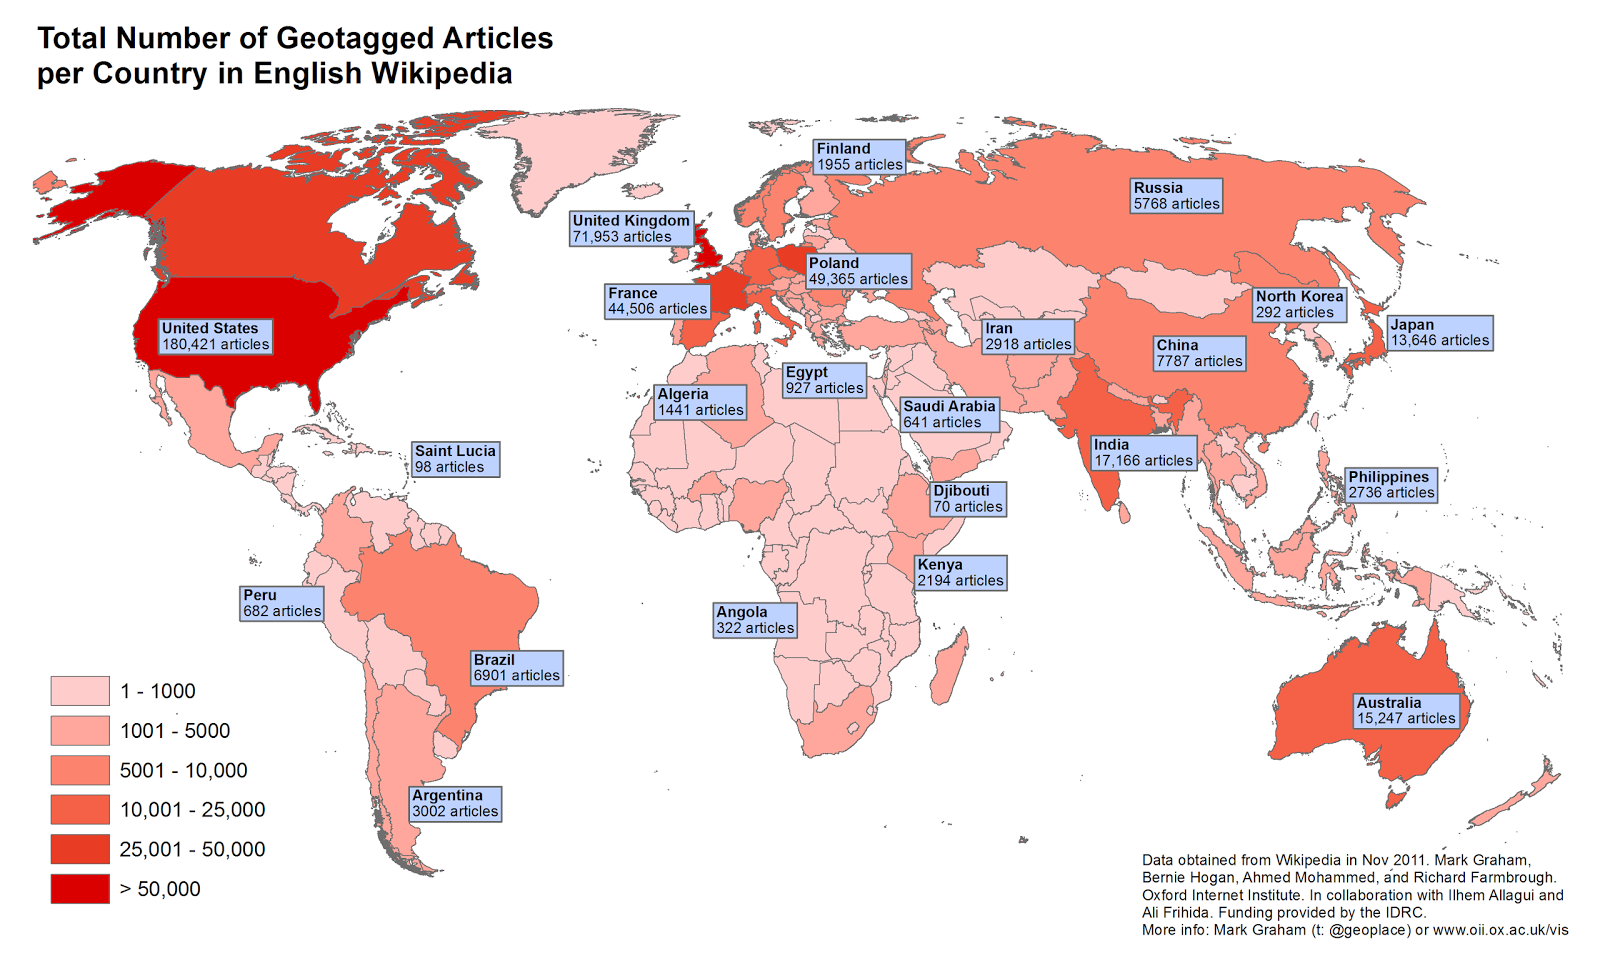 the map above click the image to enlarge it displays the number of articles in english there are a staggering number of articles in the united states